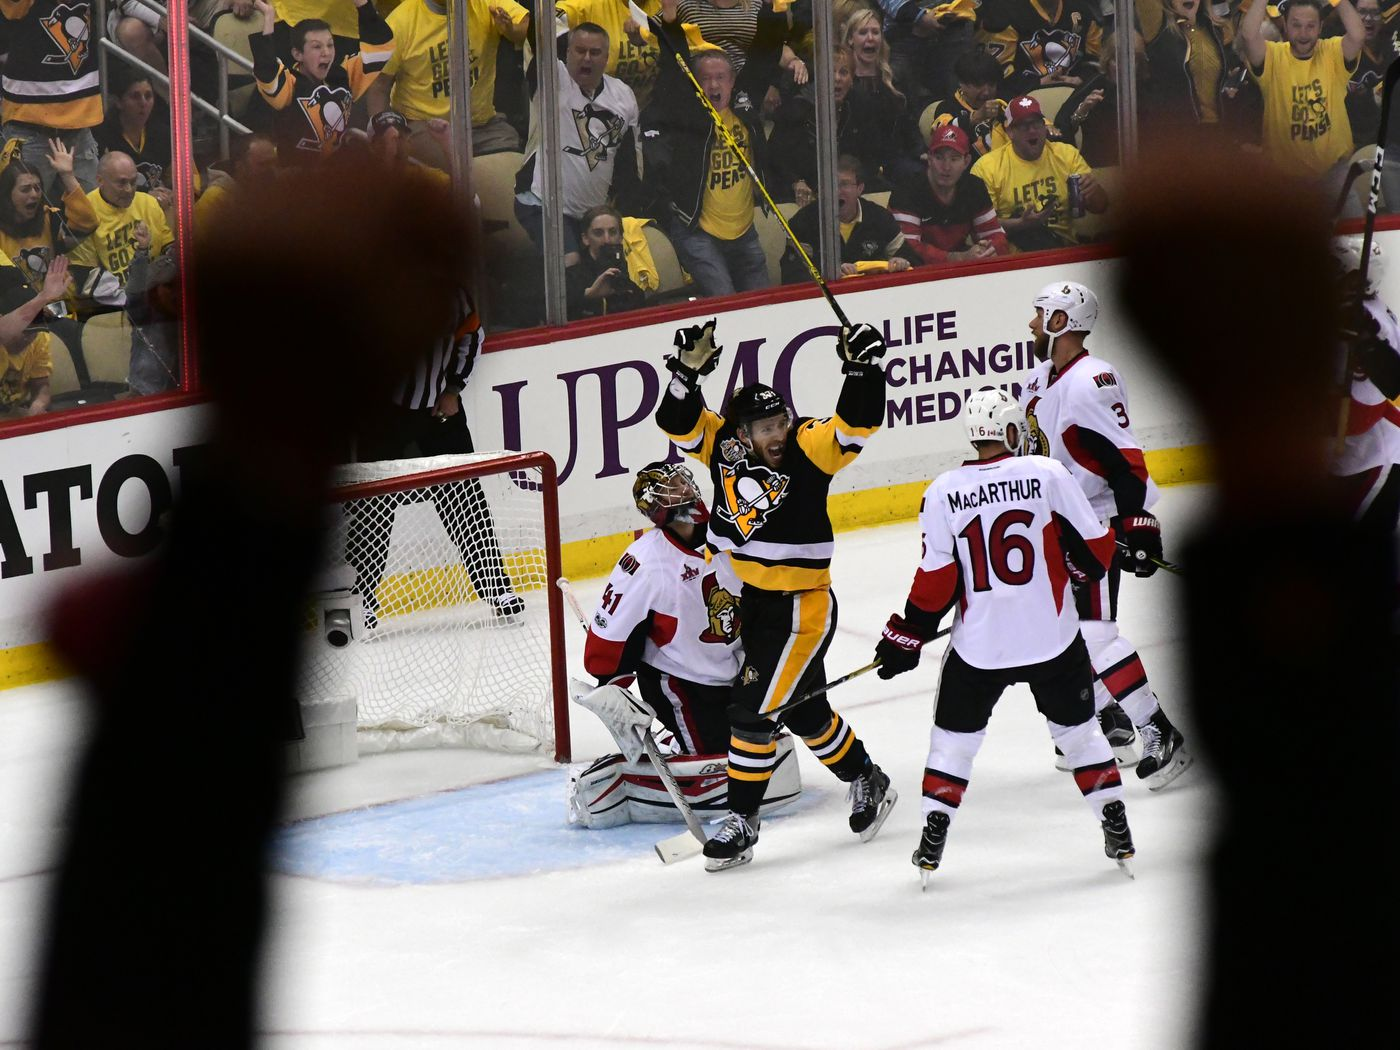 The Anatomy Of The Most Dominant Shift In Hockey How The Penguins Broke The Senators Pensburgh